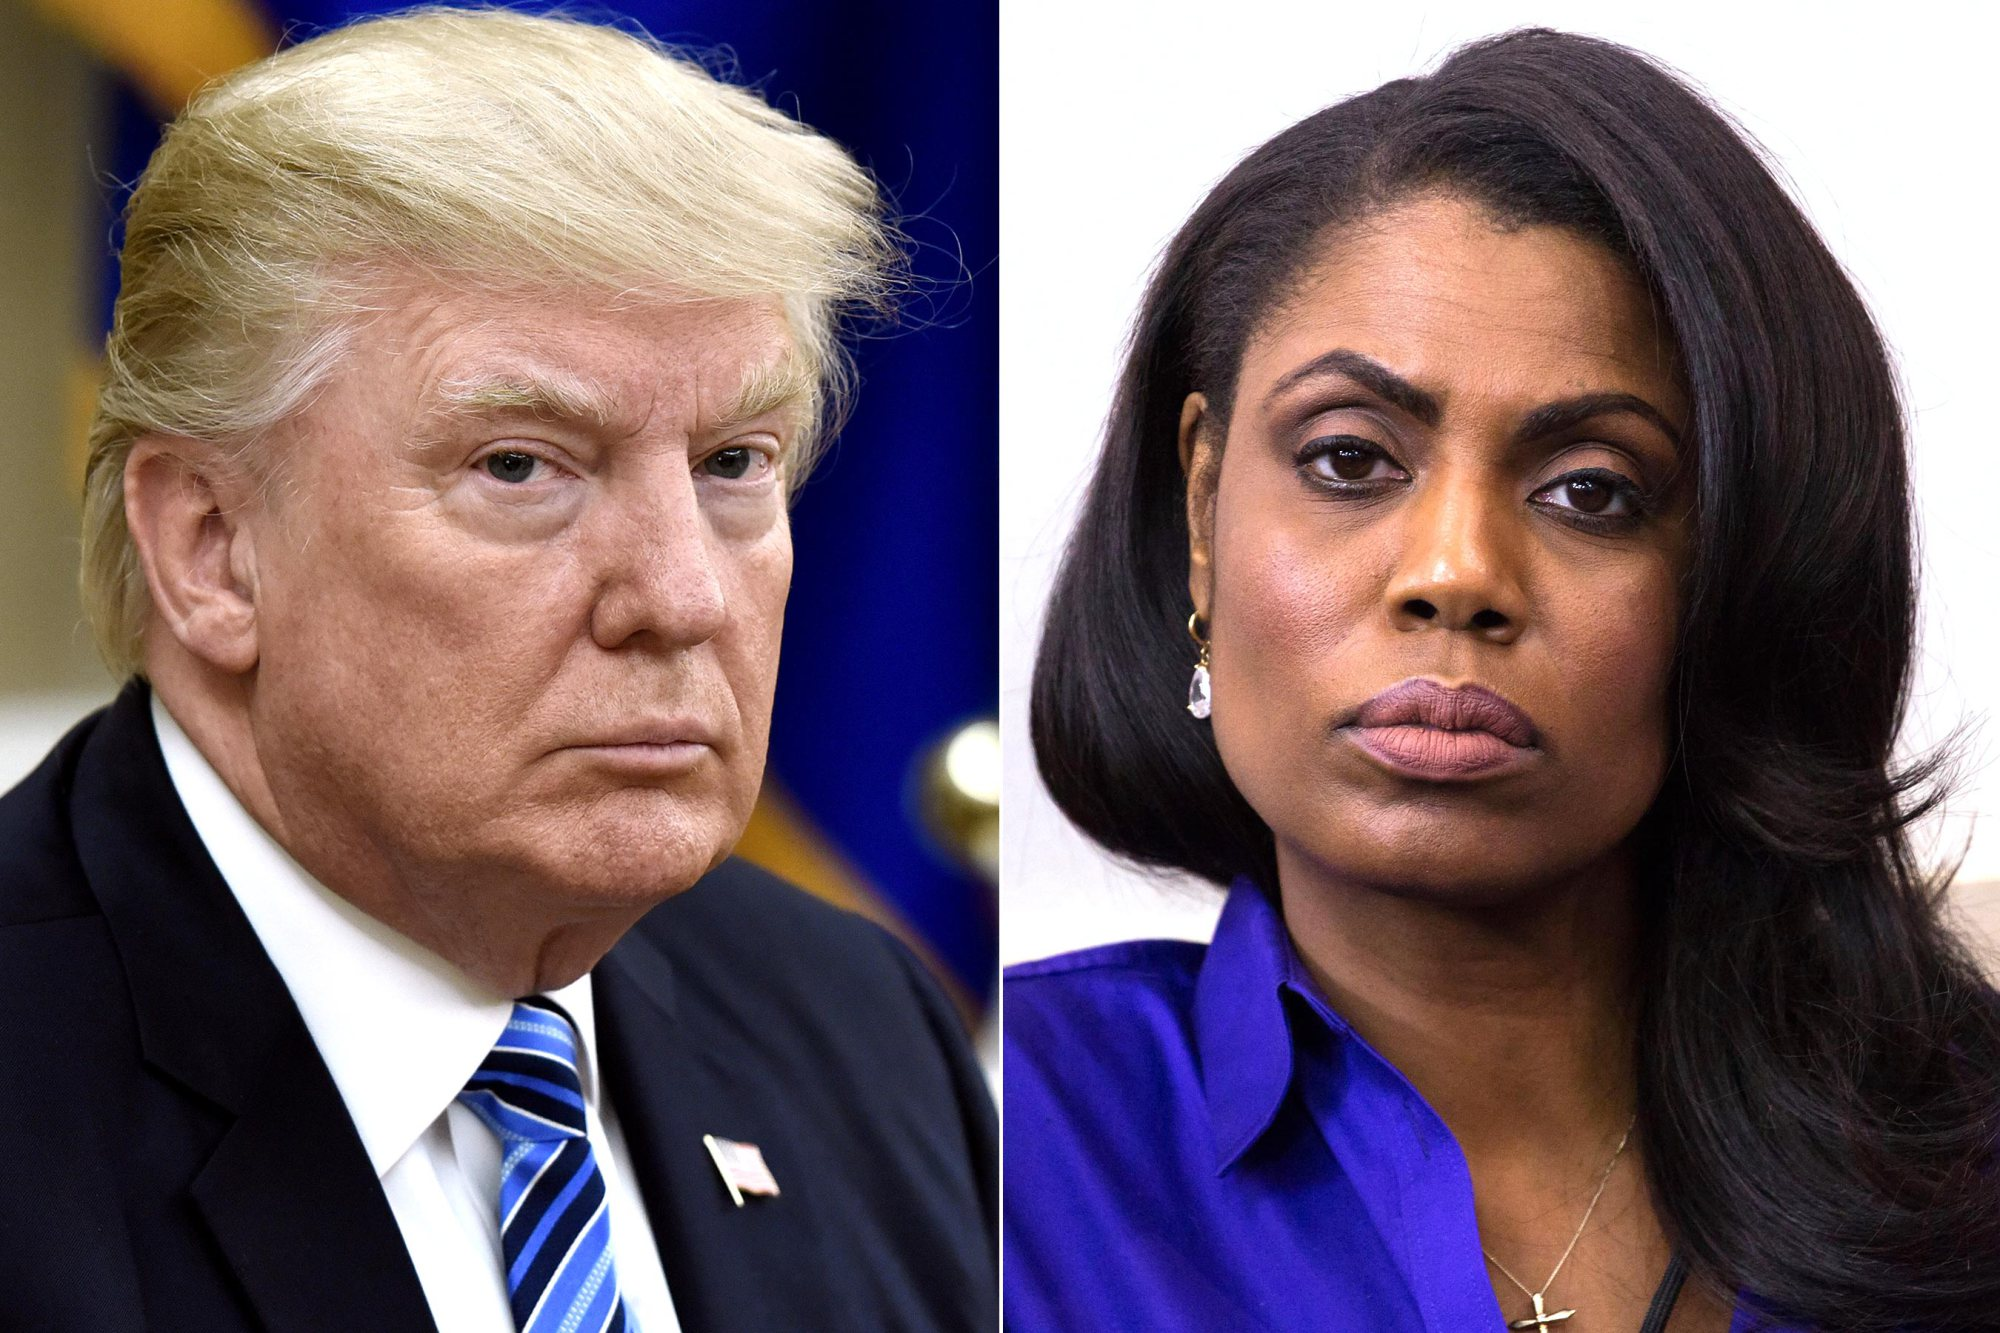 Trump campaign files complaint against Omarosa, says she breached confidentiality agreement